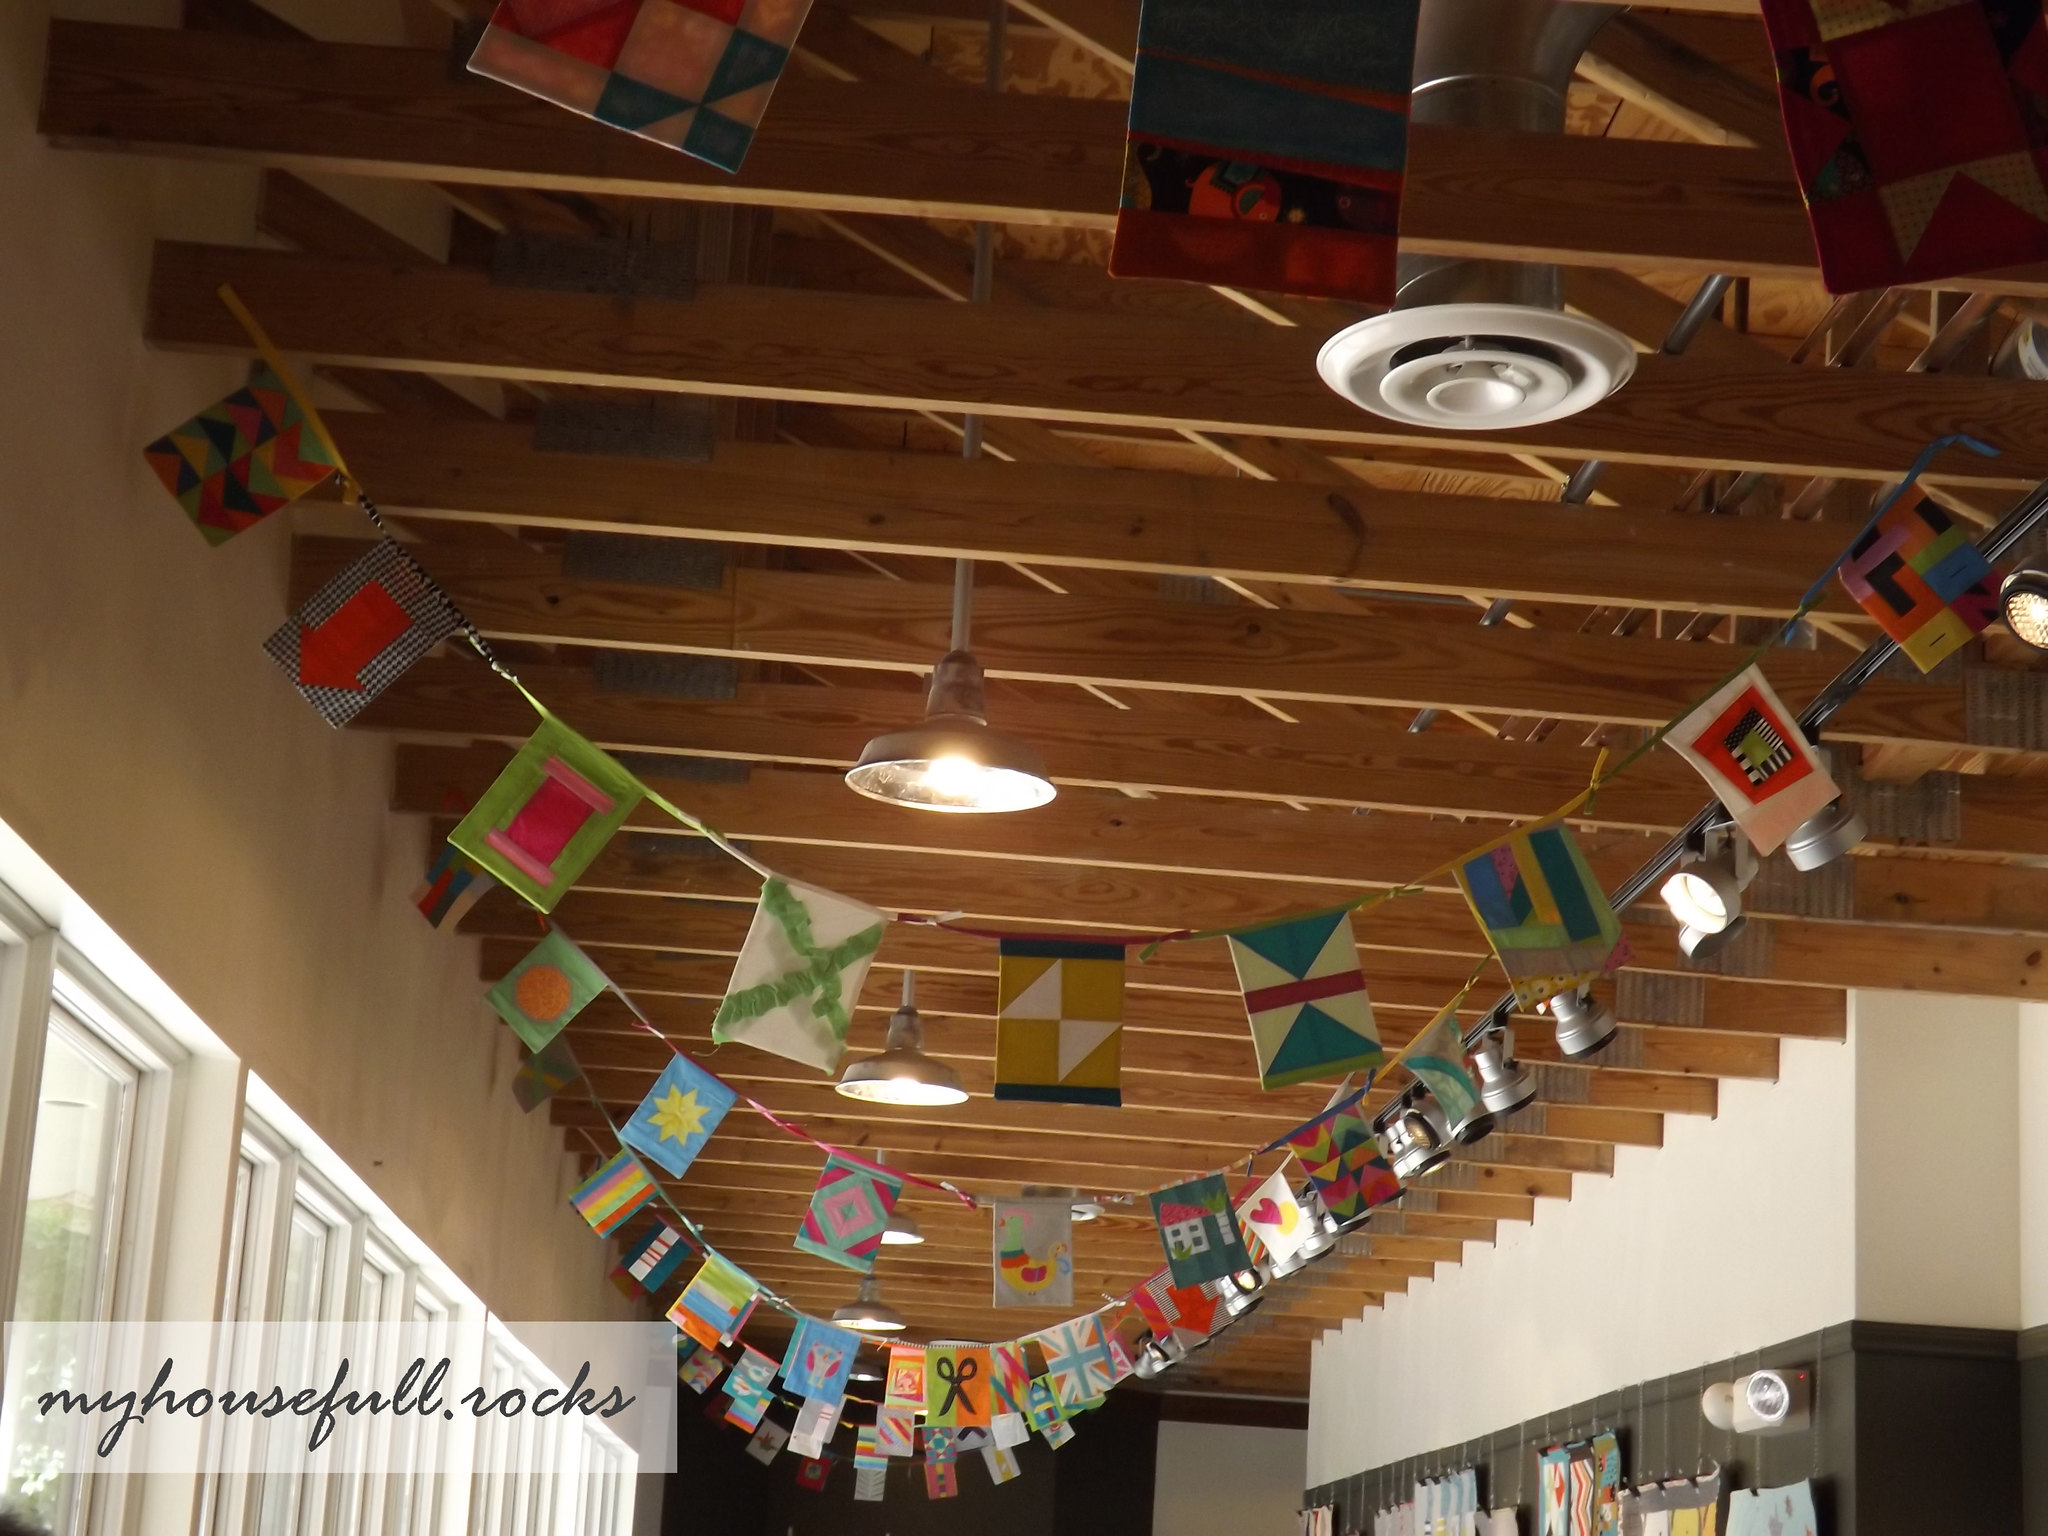 Buntings from the rafters